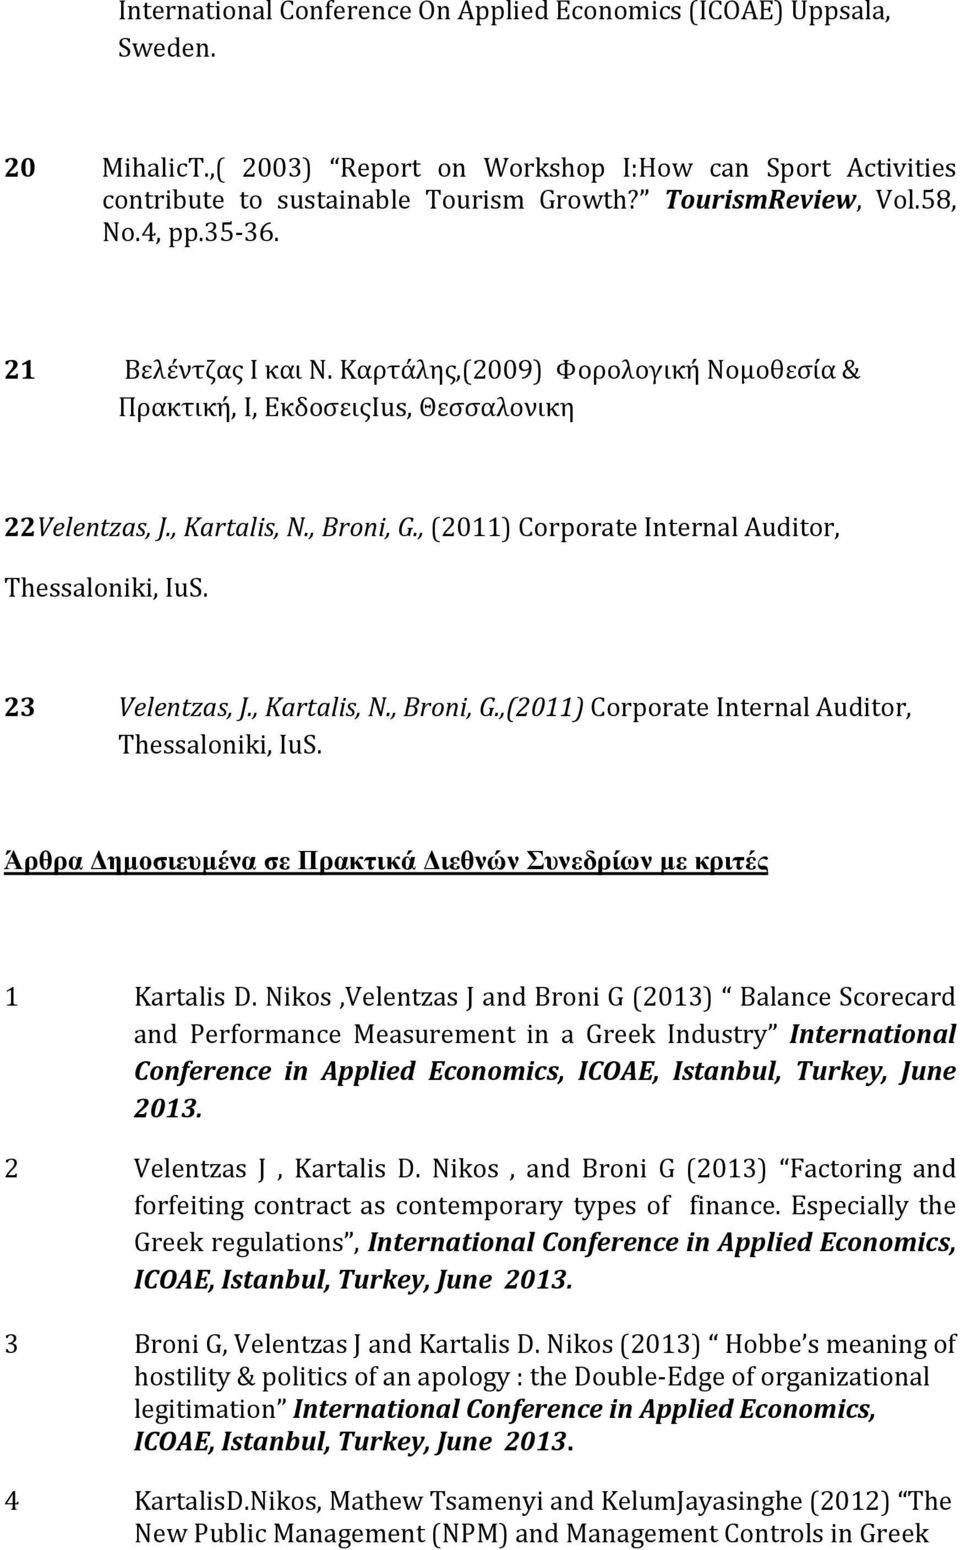 , (2011) Corporate Internal Auditor, Thessaloniki, IuS. 23 Velentzas, J., Kartalis, N., Broni, G.,(2011) Corporate Internal Auditor, Thessaloniki, IuS.